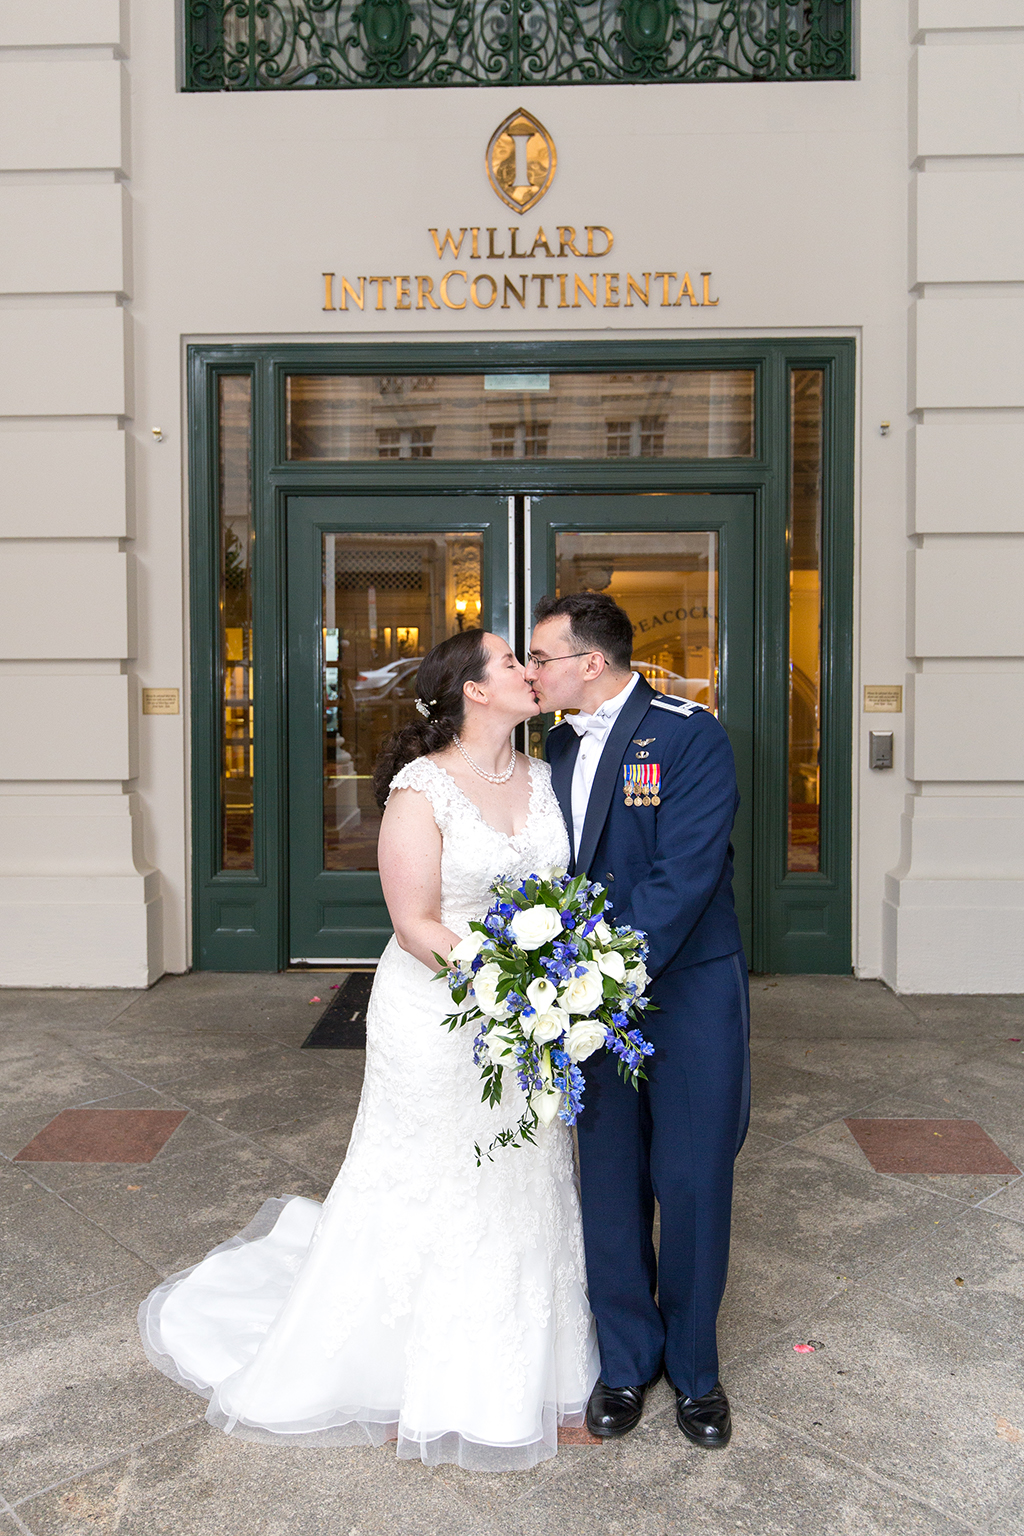 This Naval Officer Bride Unwittingly Smuggled Her Own Engagement Ring Overseas to Her Air Force Officer Groom images 11